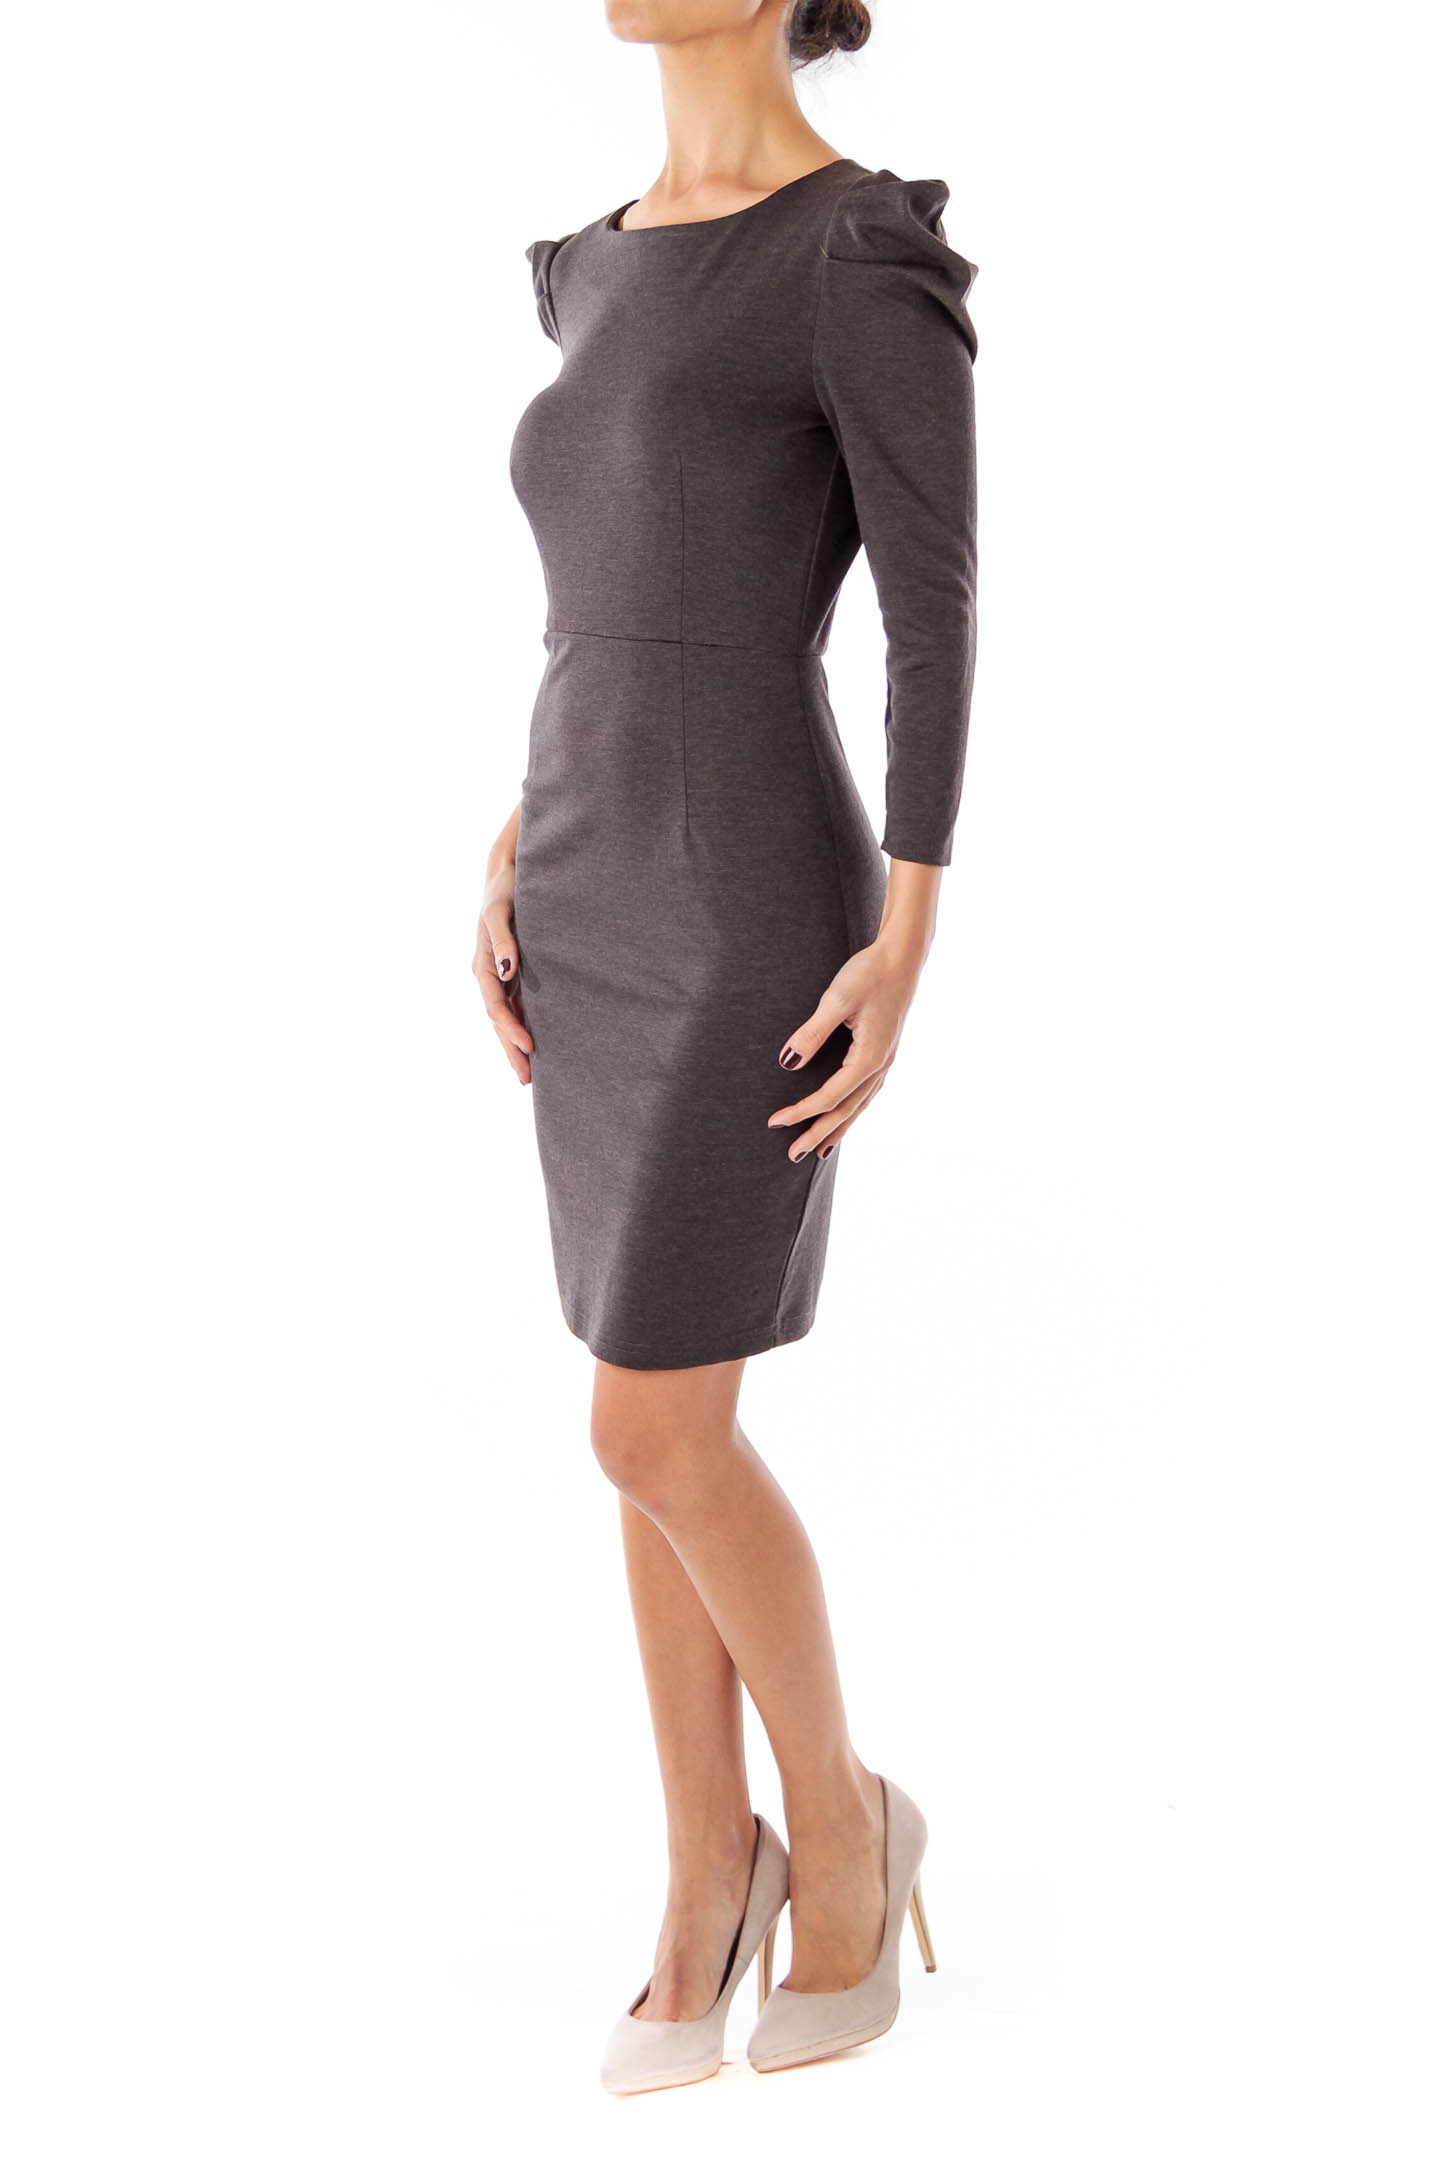 Gray Puffy Sleeve Jersey Dress